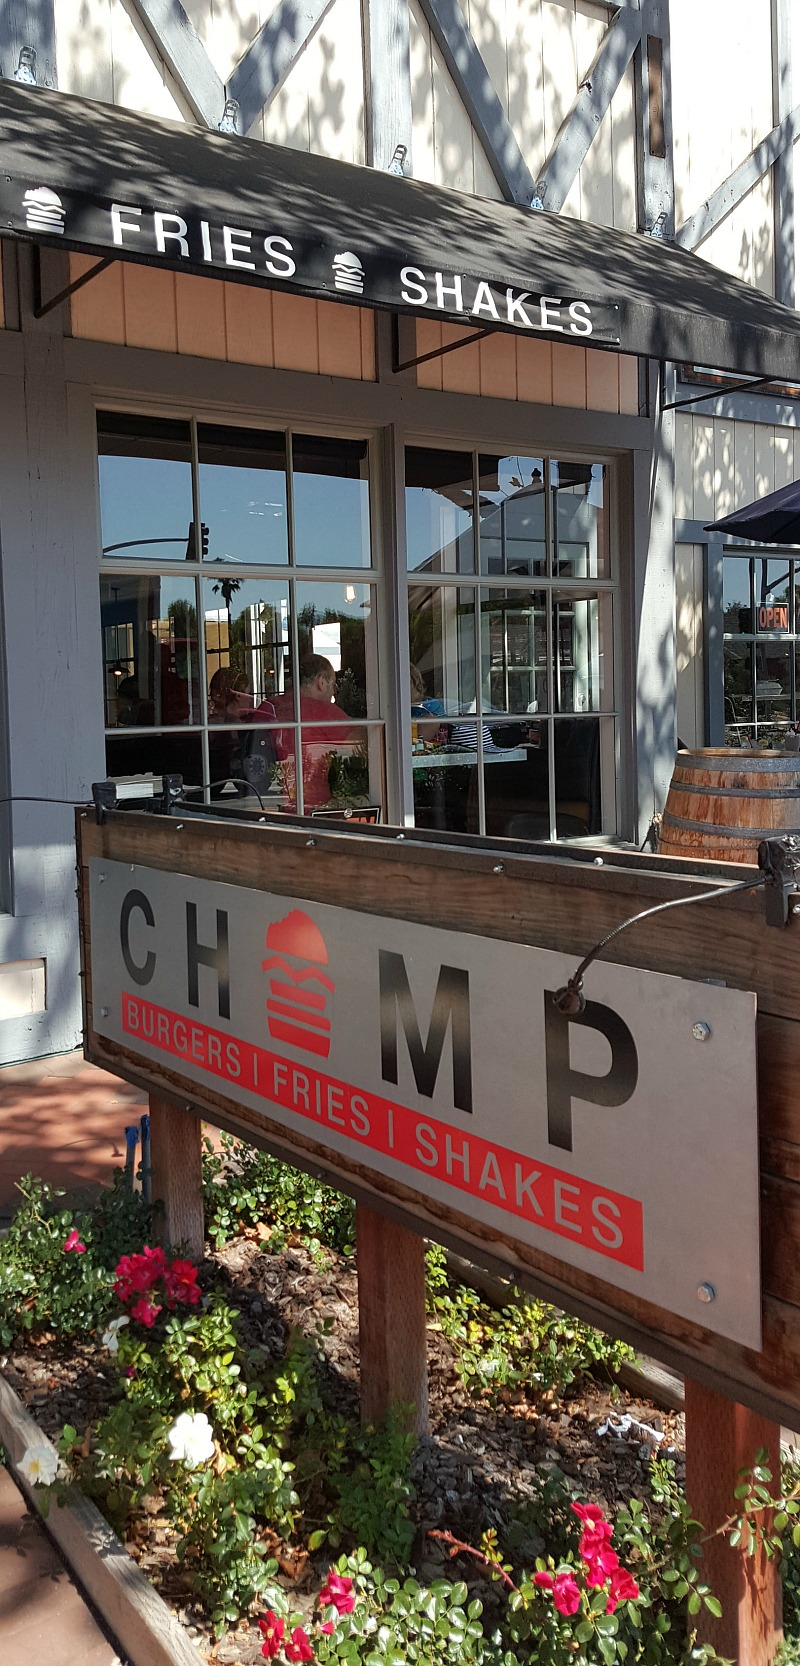 Chomp Diner in Solvang California